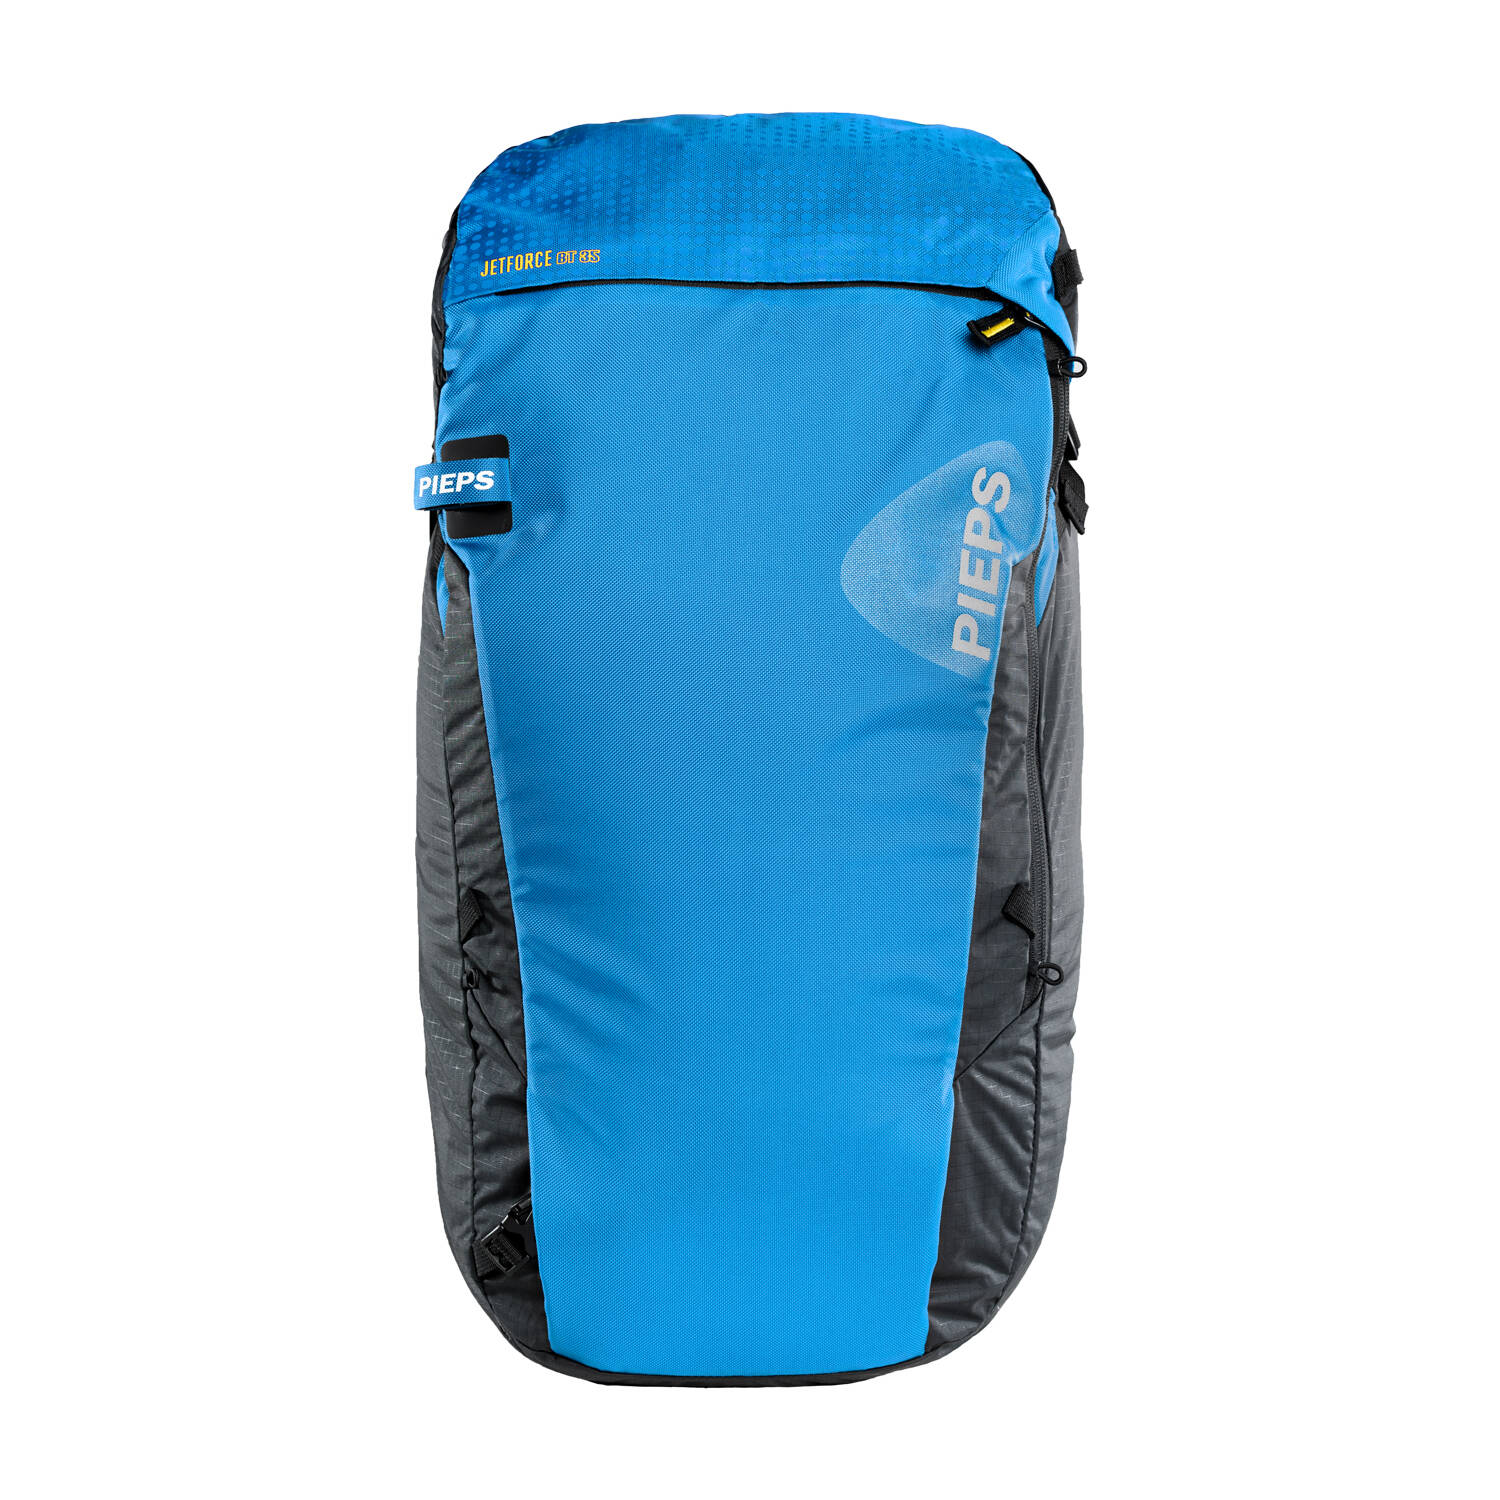 PIEPS Jet Force BT 35L – Booster – Blue